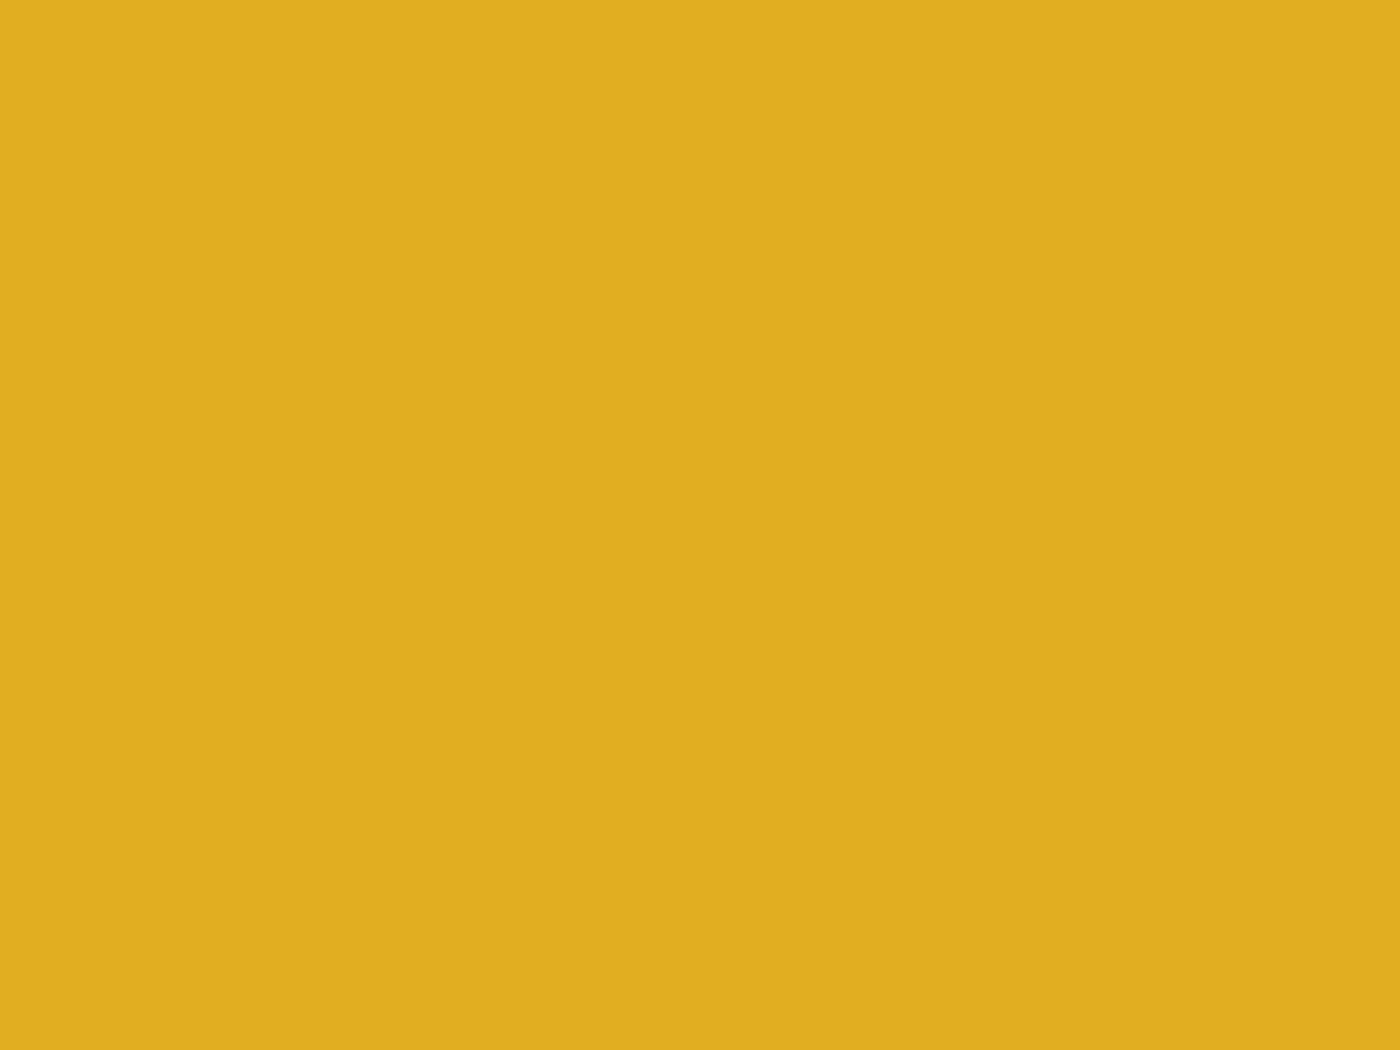 1400x1050 Urobilin Solid Color Background